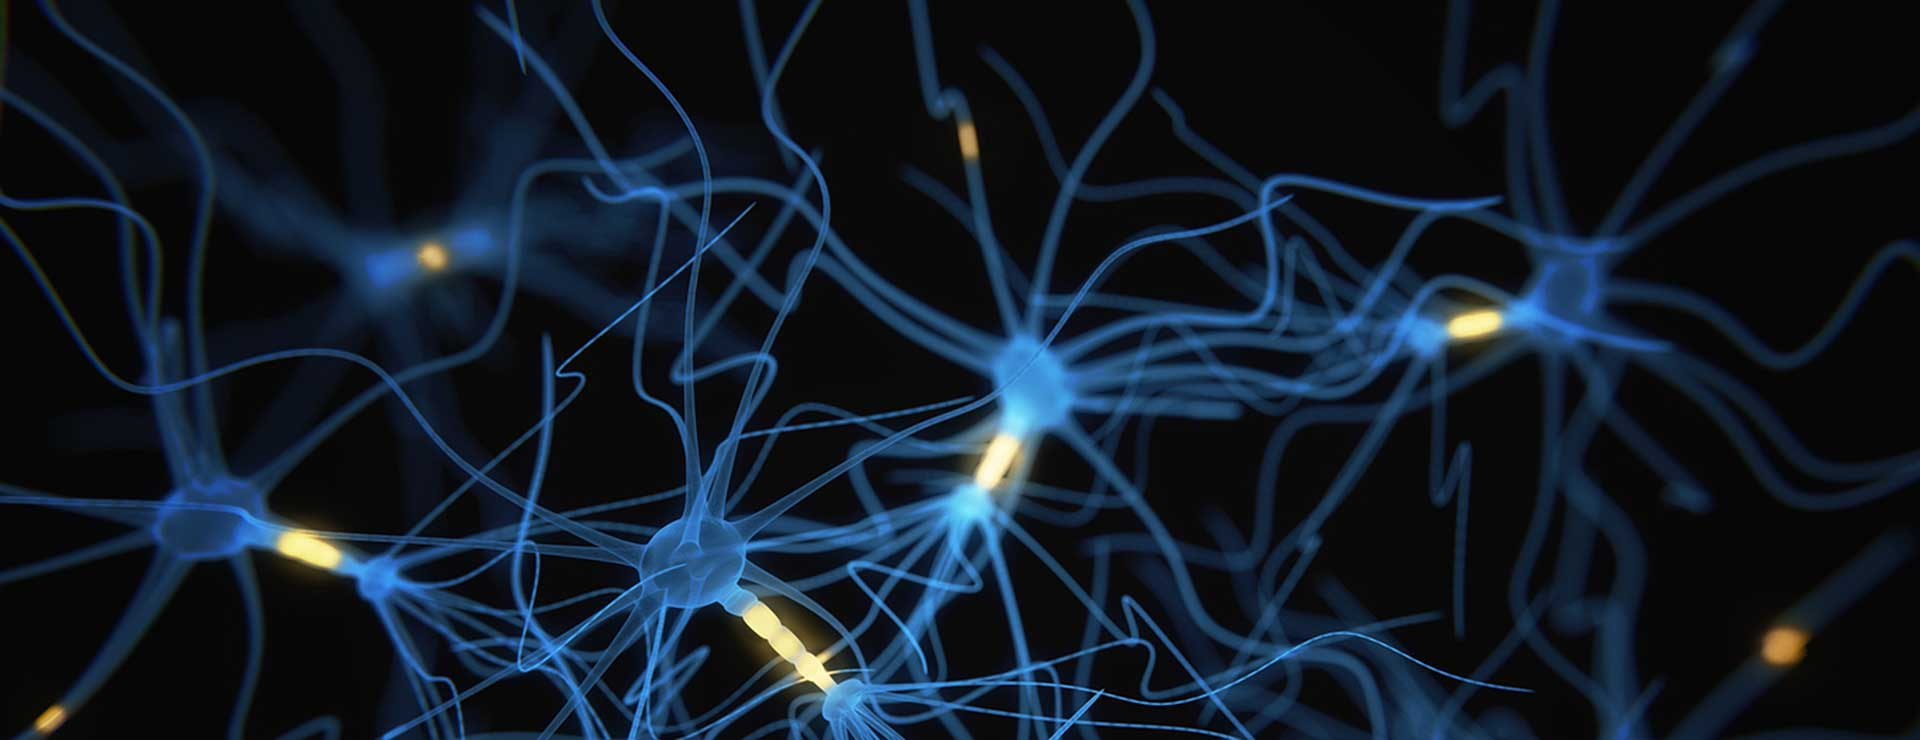 closeup image of neurons